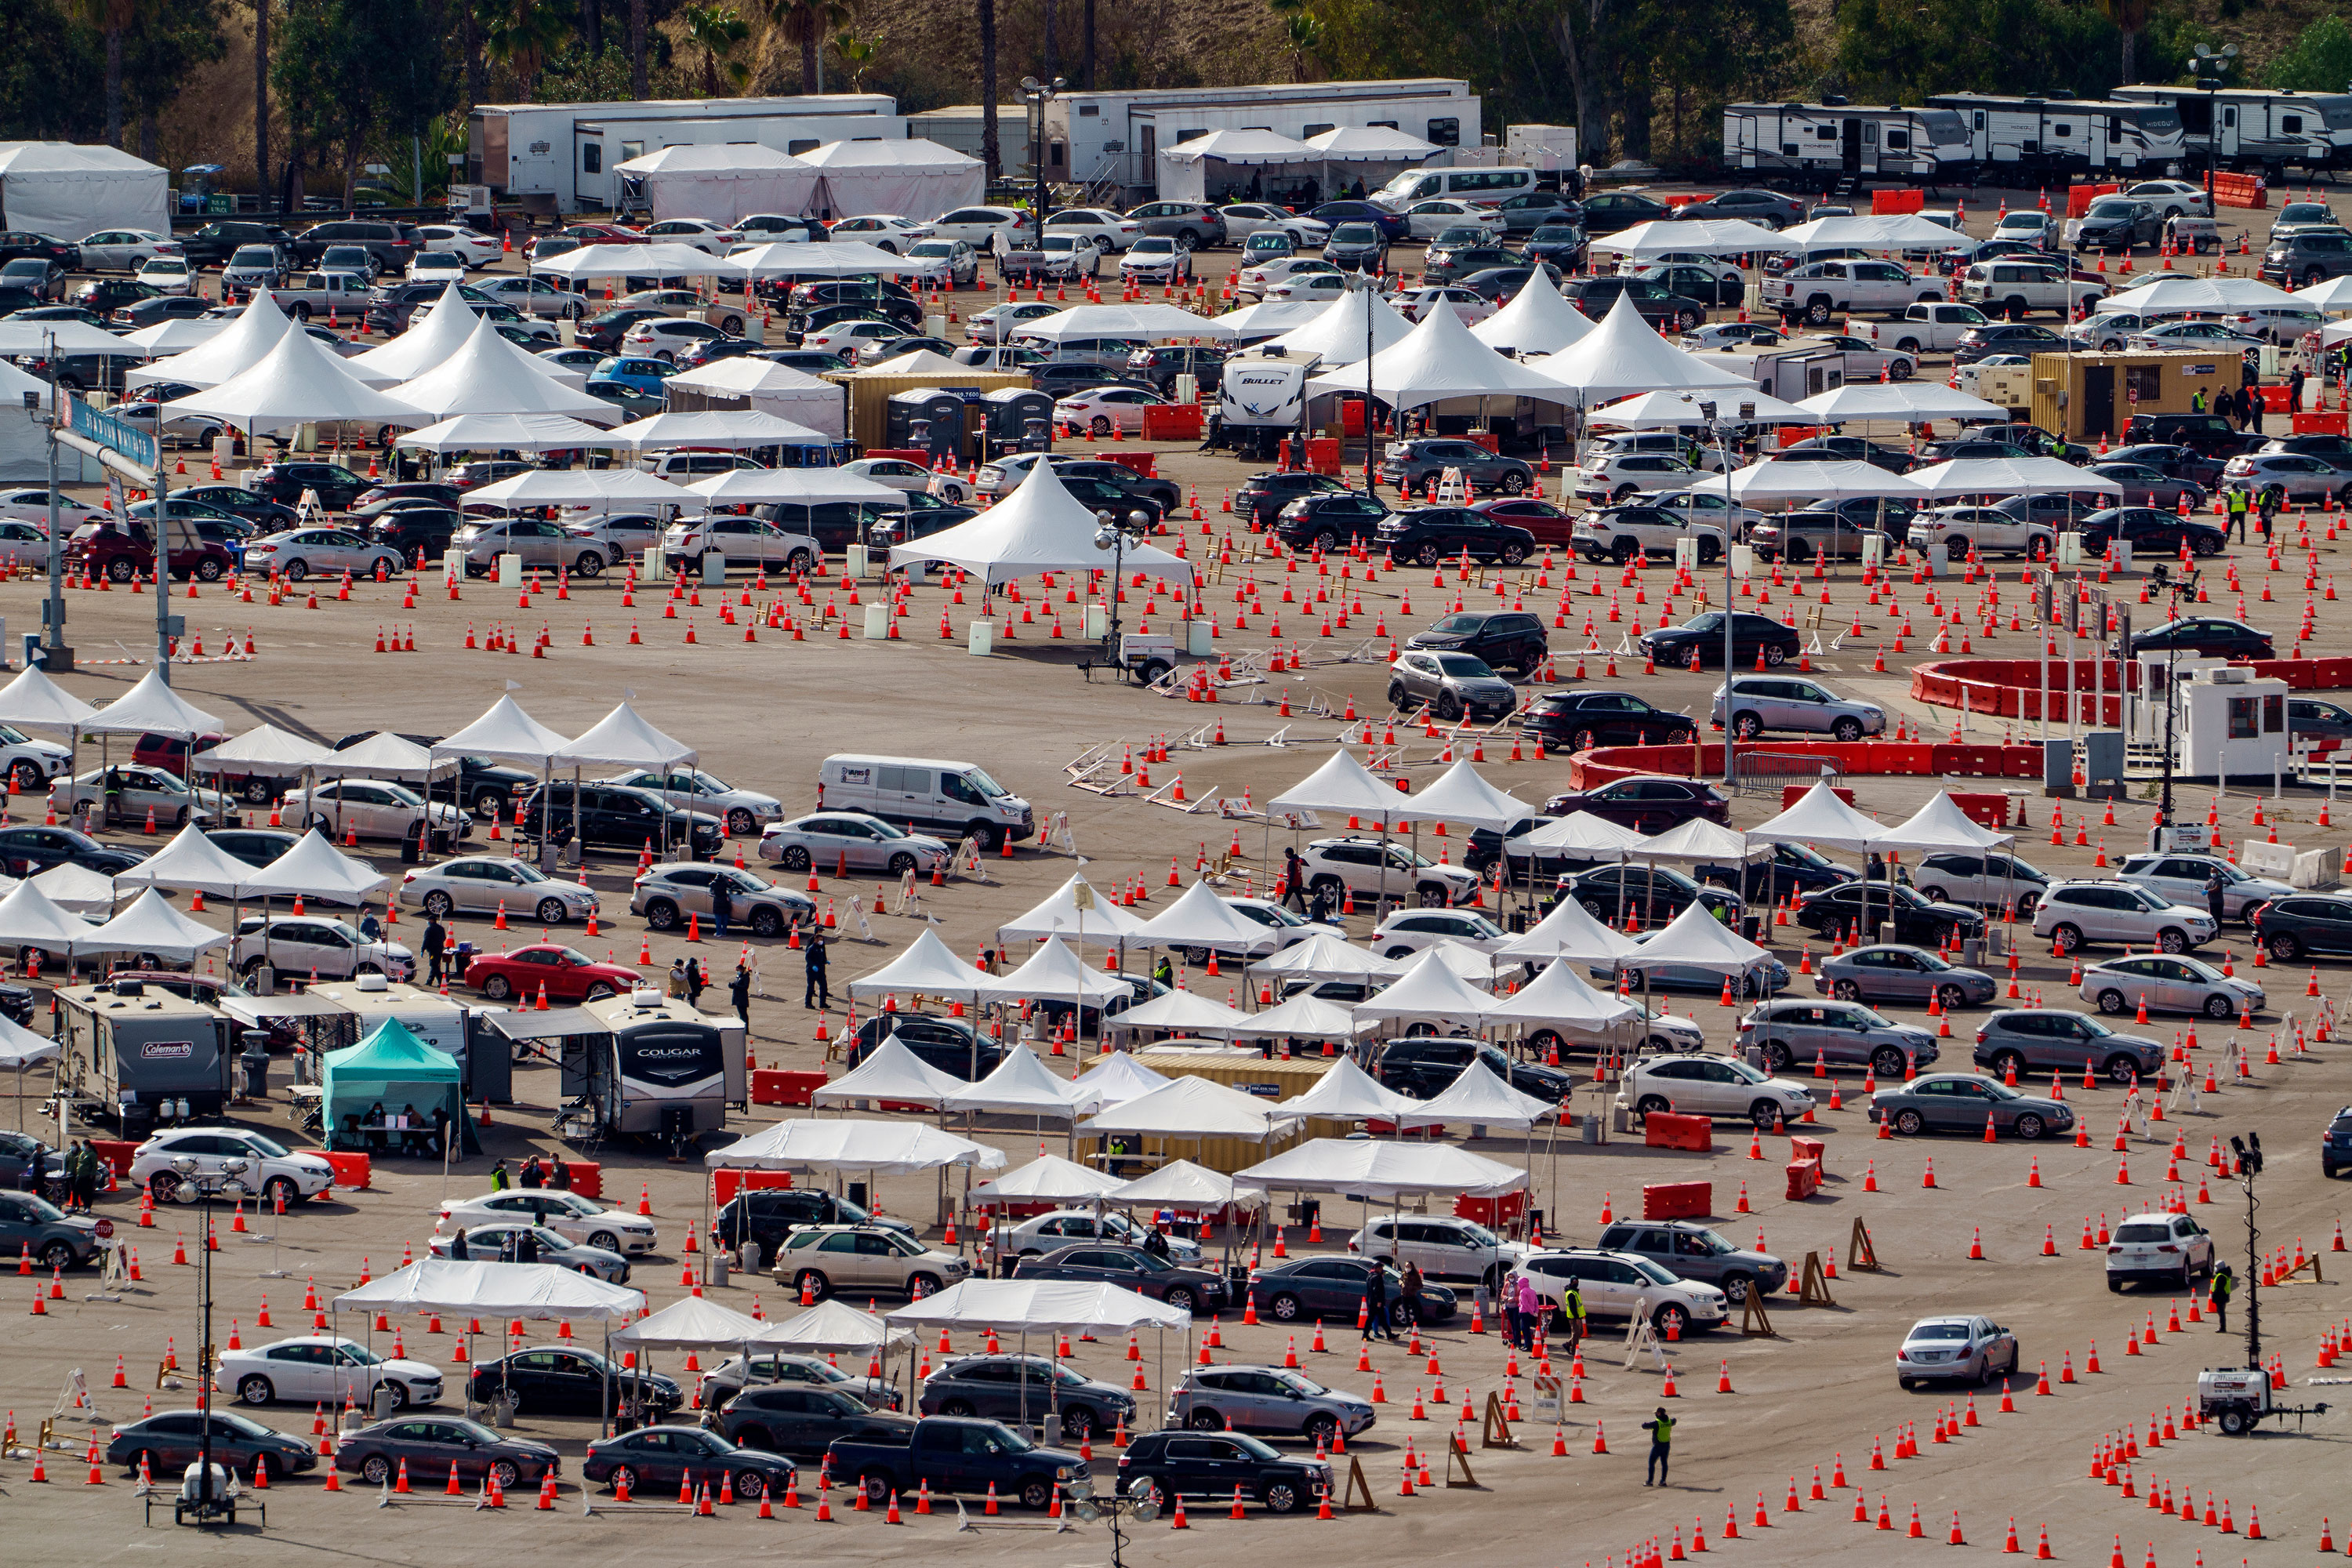 Drivers wait in line at a Covid-19 vaccination site in the parking lot of Dodger Stadium in Los Angeles on January 27.